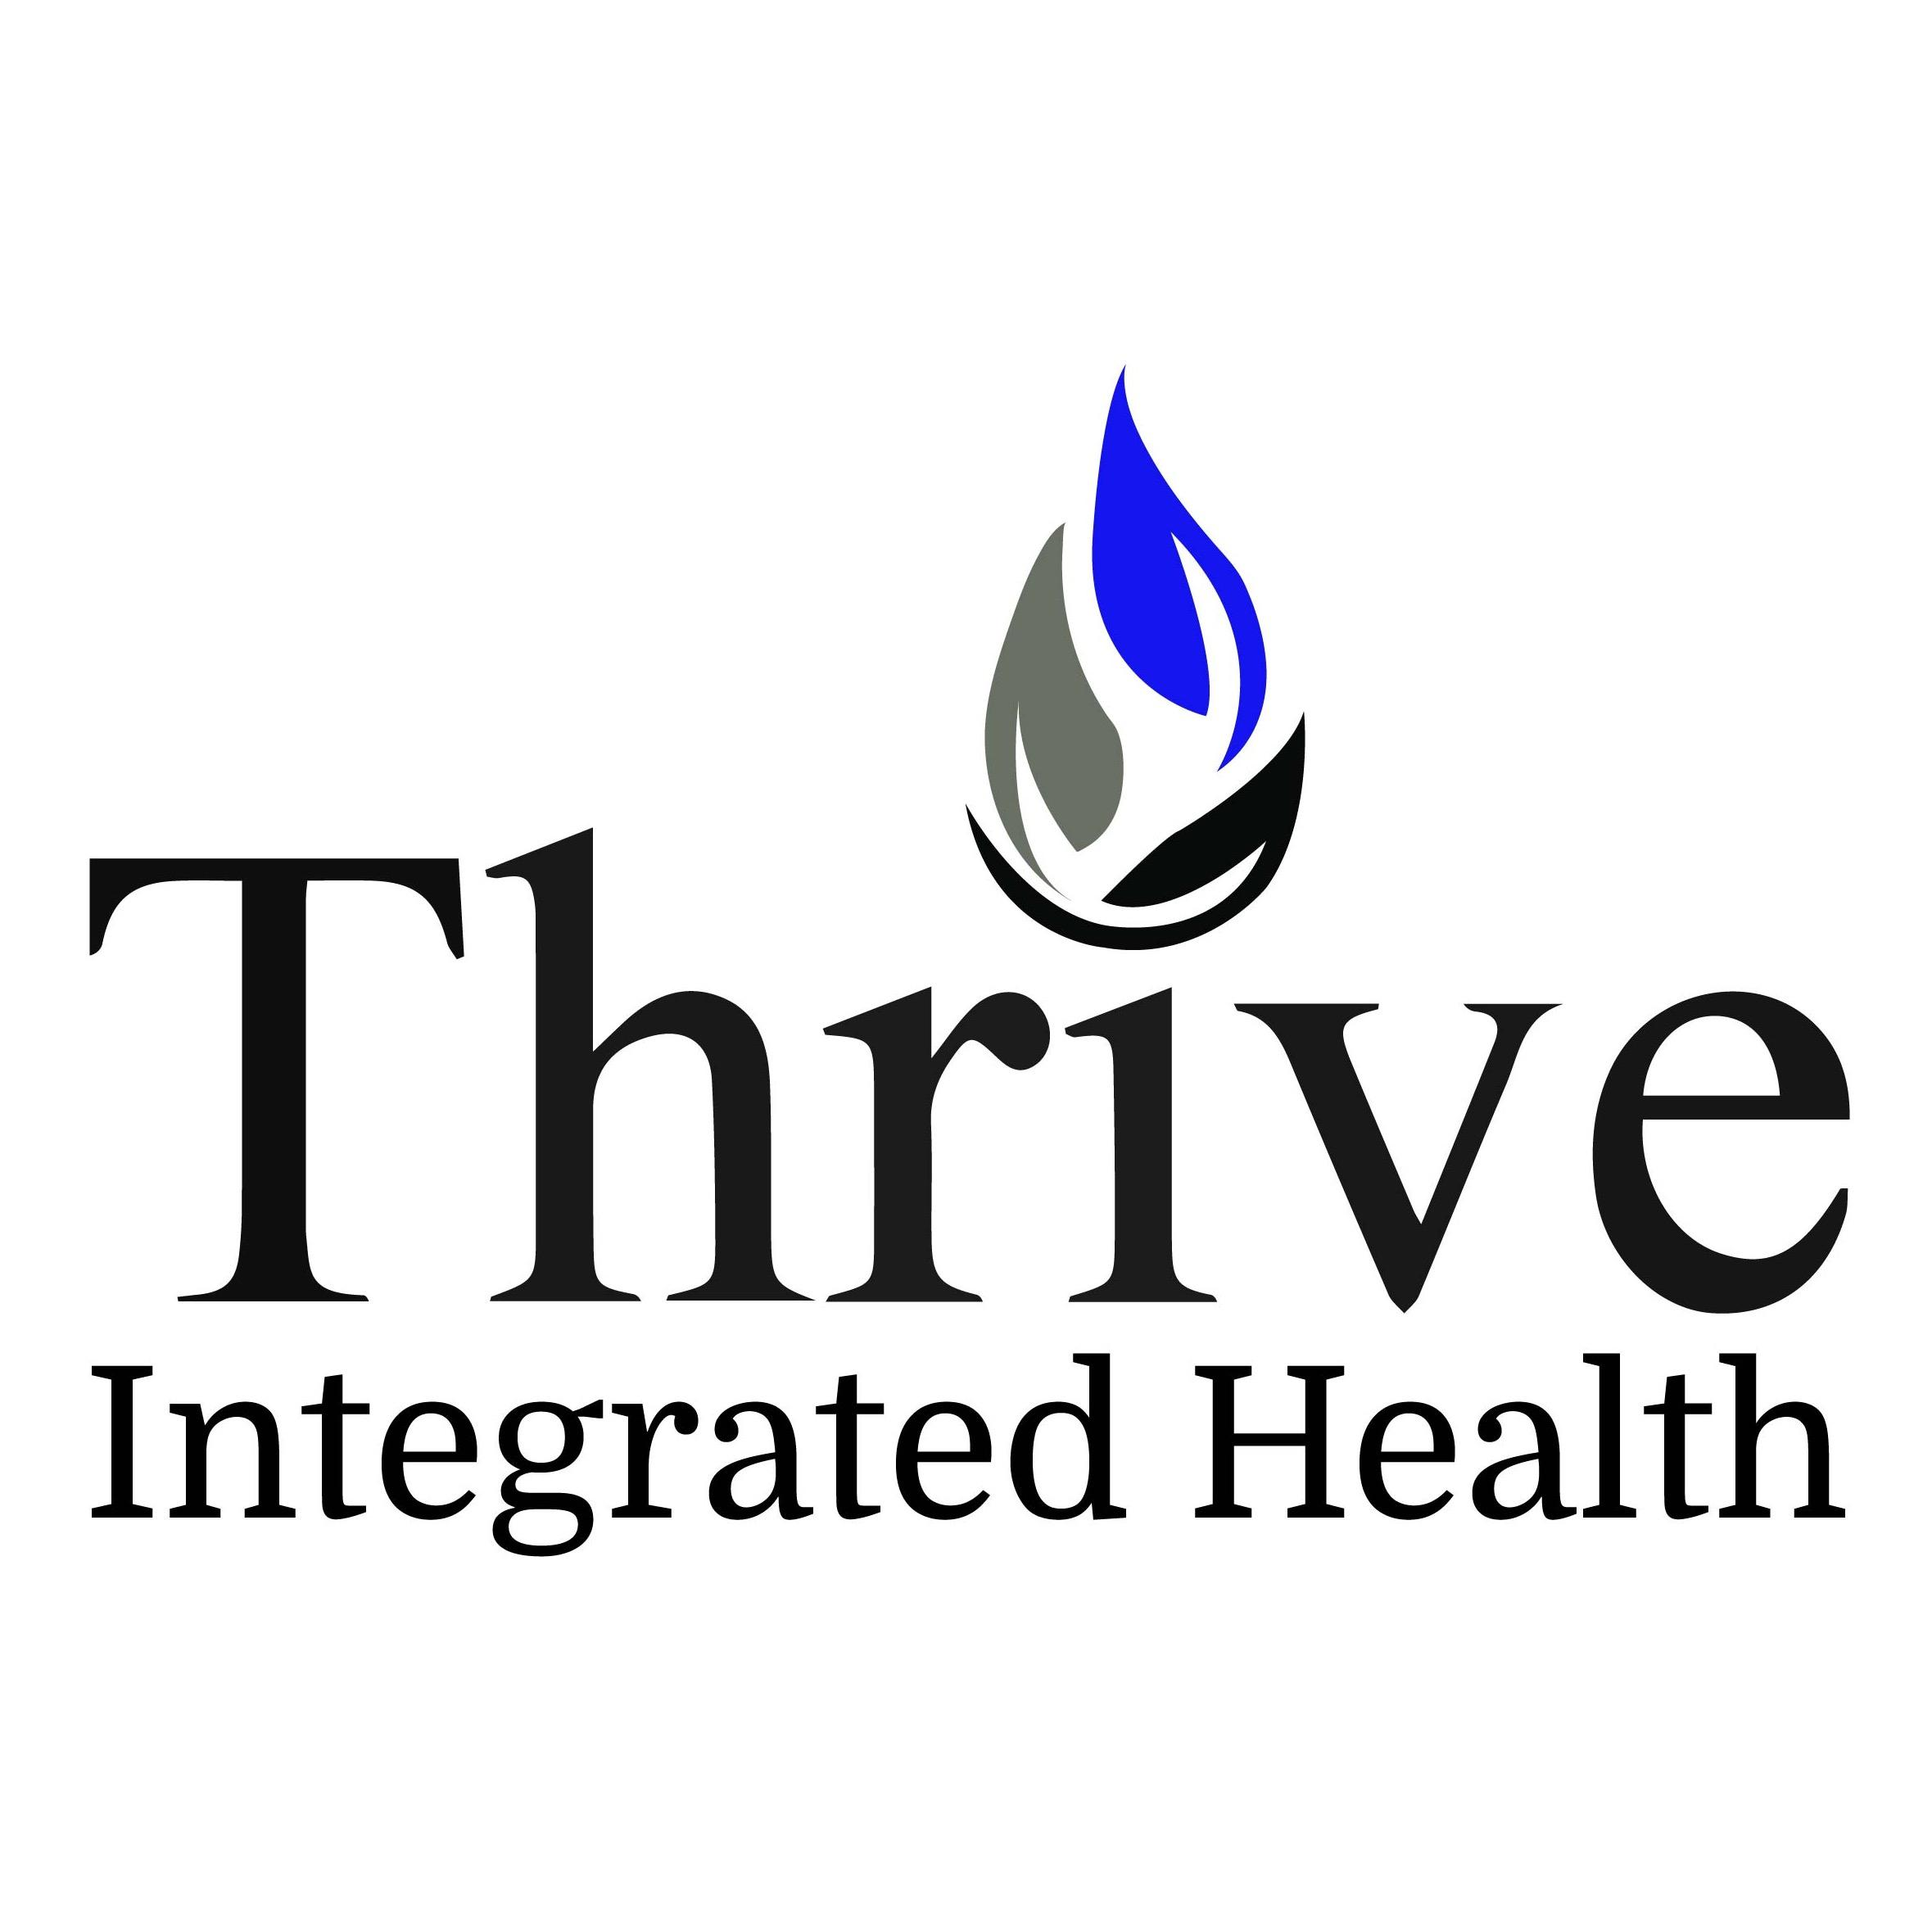 Thrive Home Health Agency is a Virginia Medicaid certified home care agency. Thrive home health care provides in-home care services from the basic to the complex. Our highly skilled Registered and Licensed practical nurses, home health aids provide expert home health care where you need it most, at the comfort of your home.